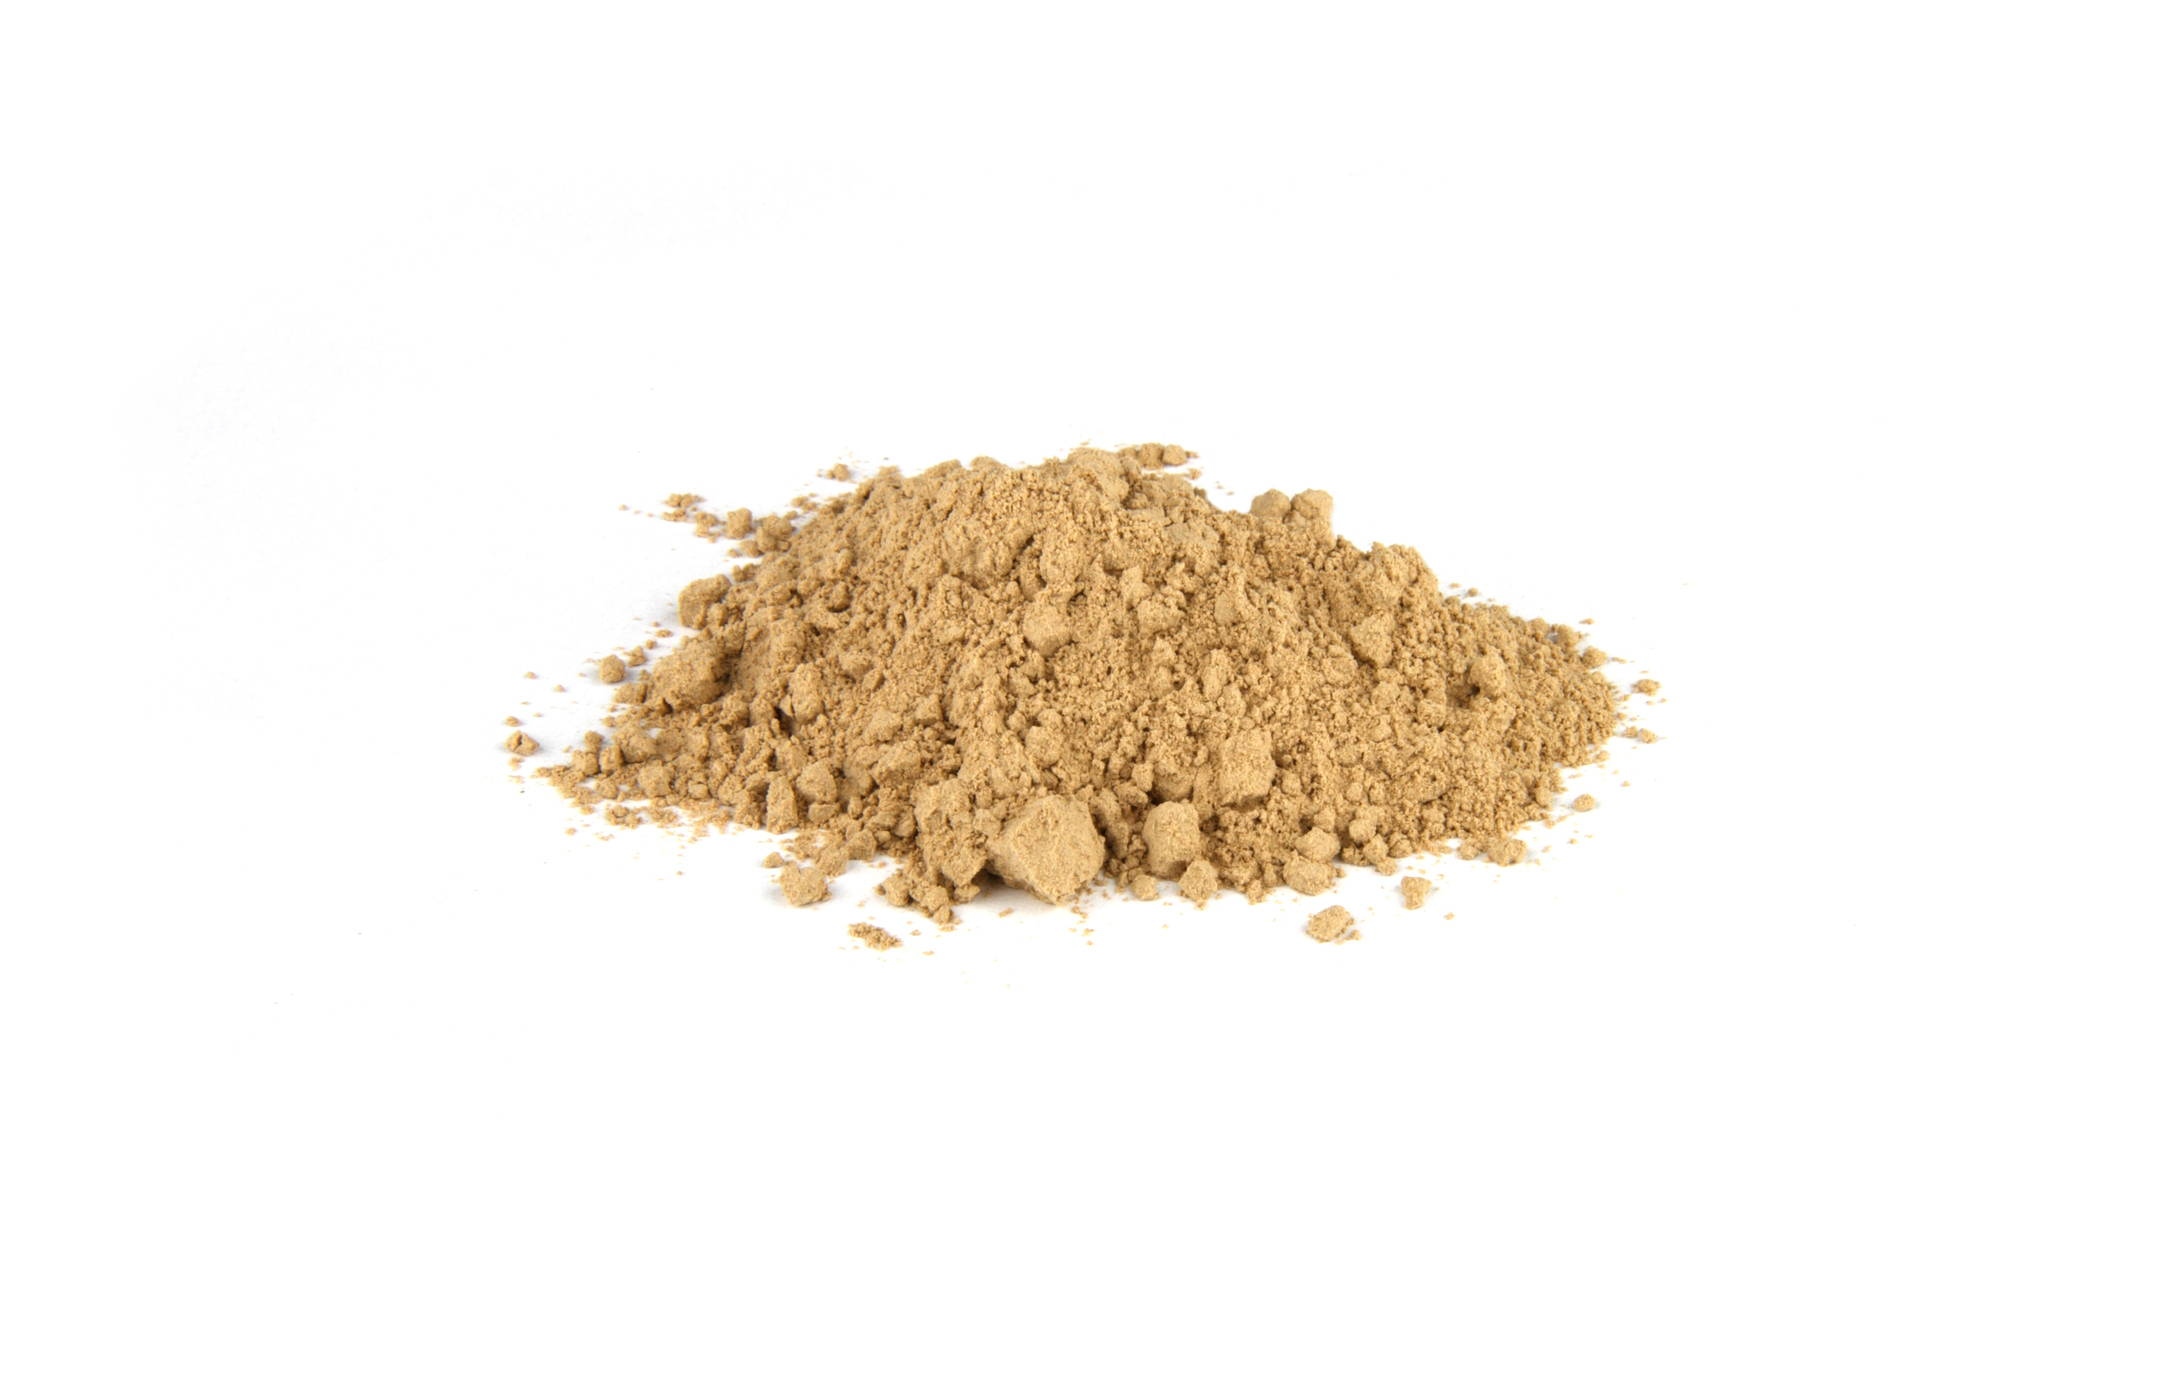 Copper Powder ingredient